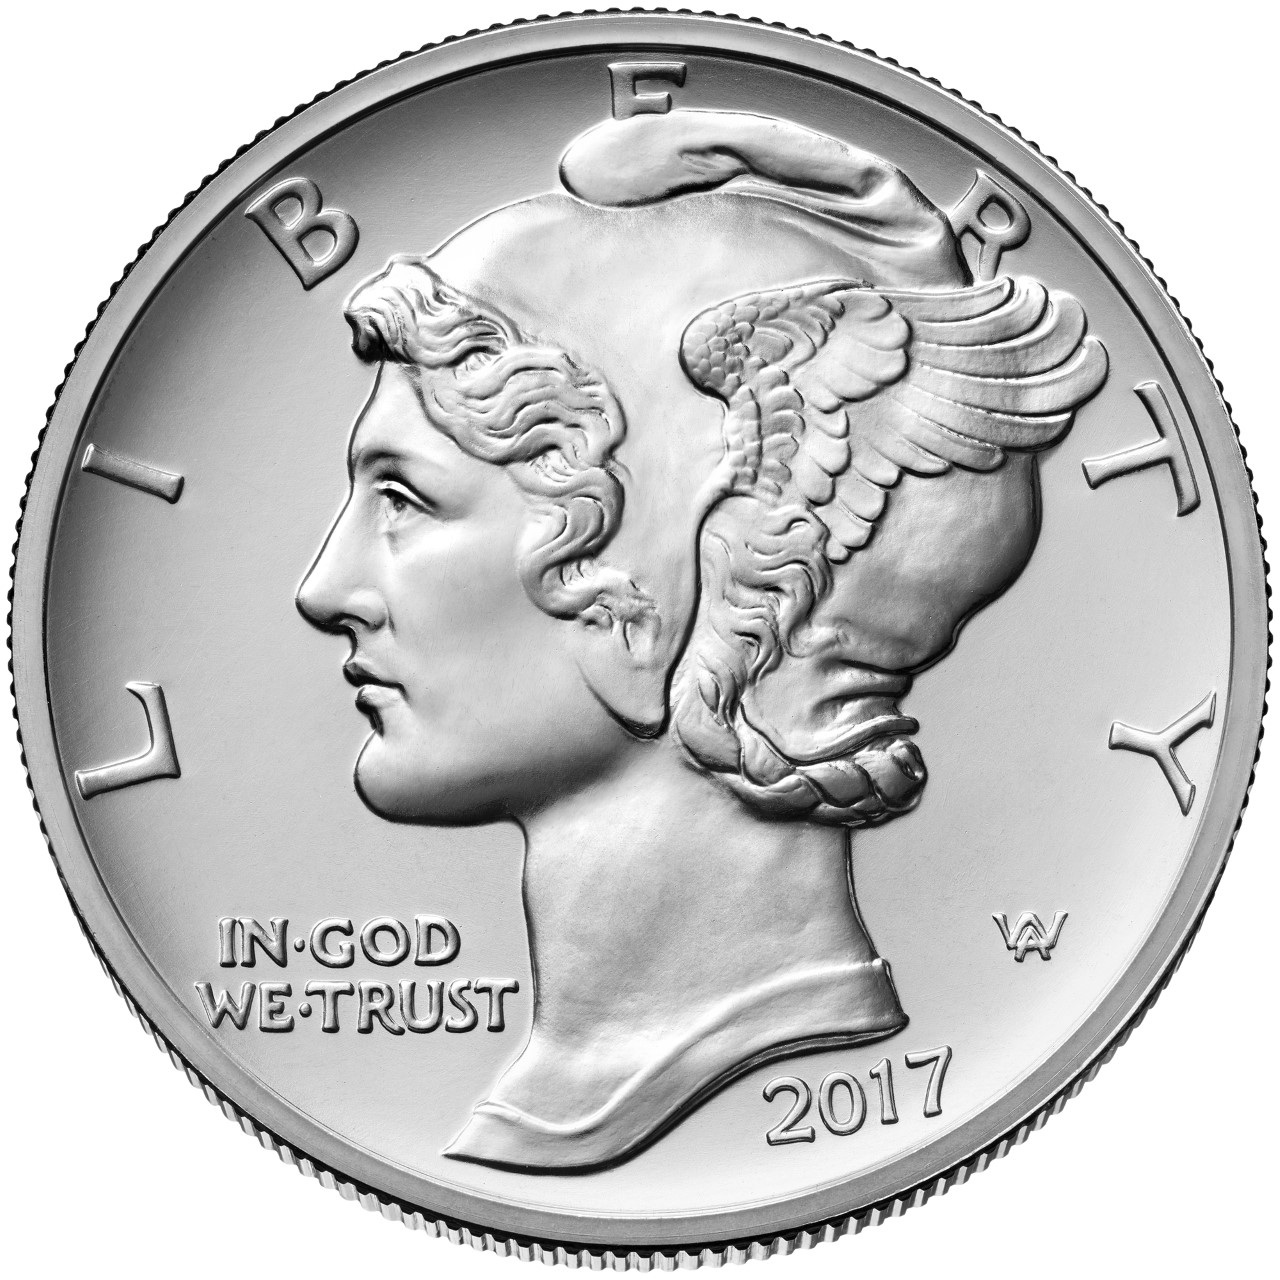 Sales of the coin appear to be quite good, especially of Mint State 70 coins, which went fast last week.